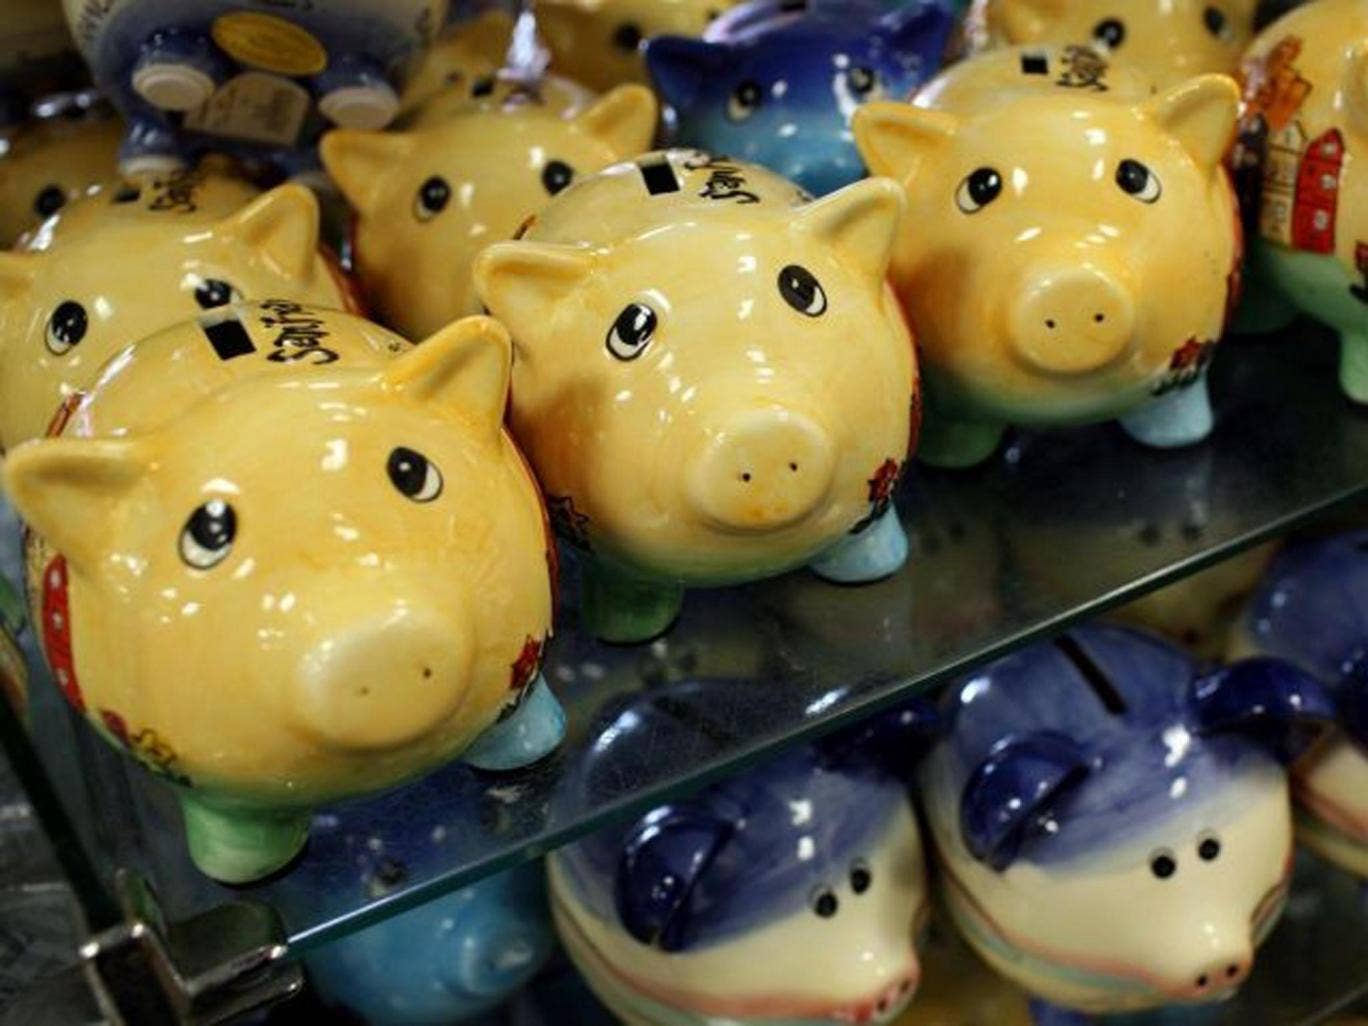 Regular savings accounts are not offering much more interest than piggy banks at the moment